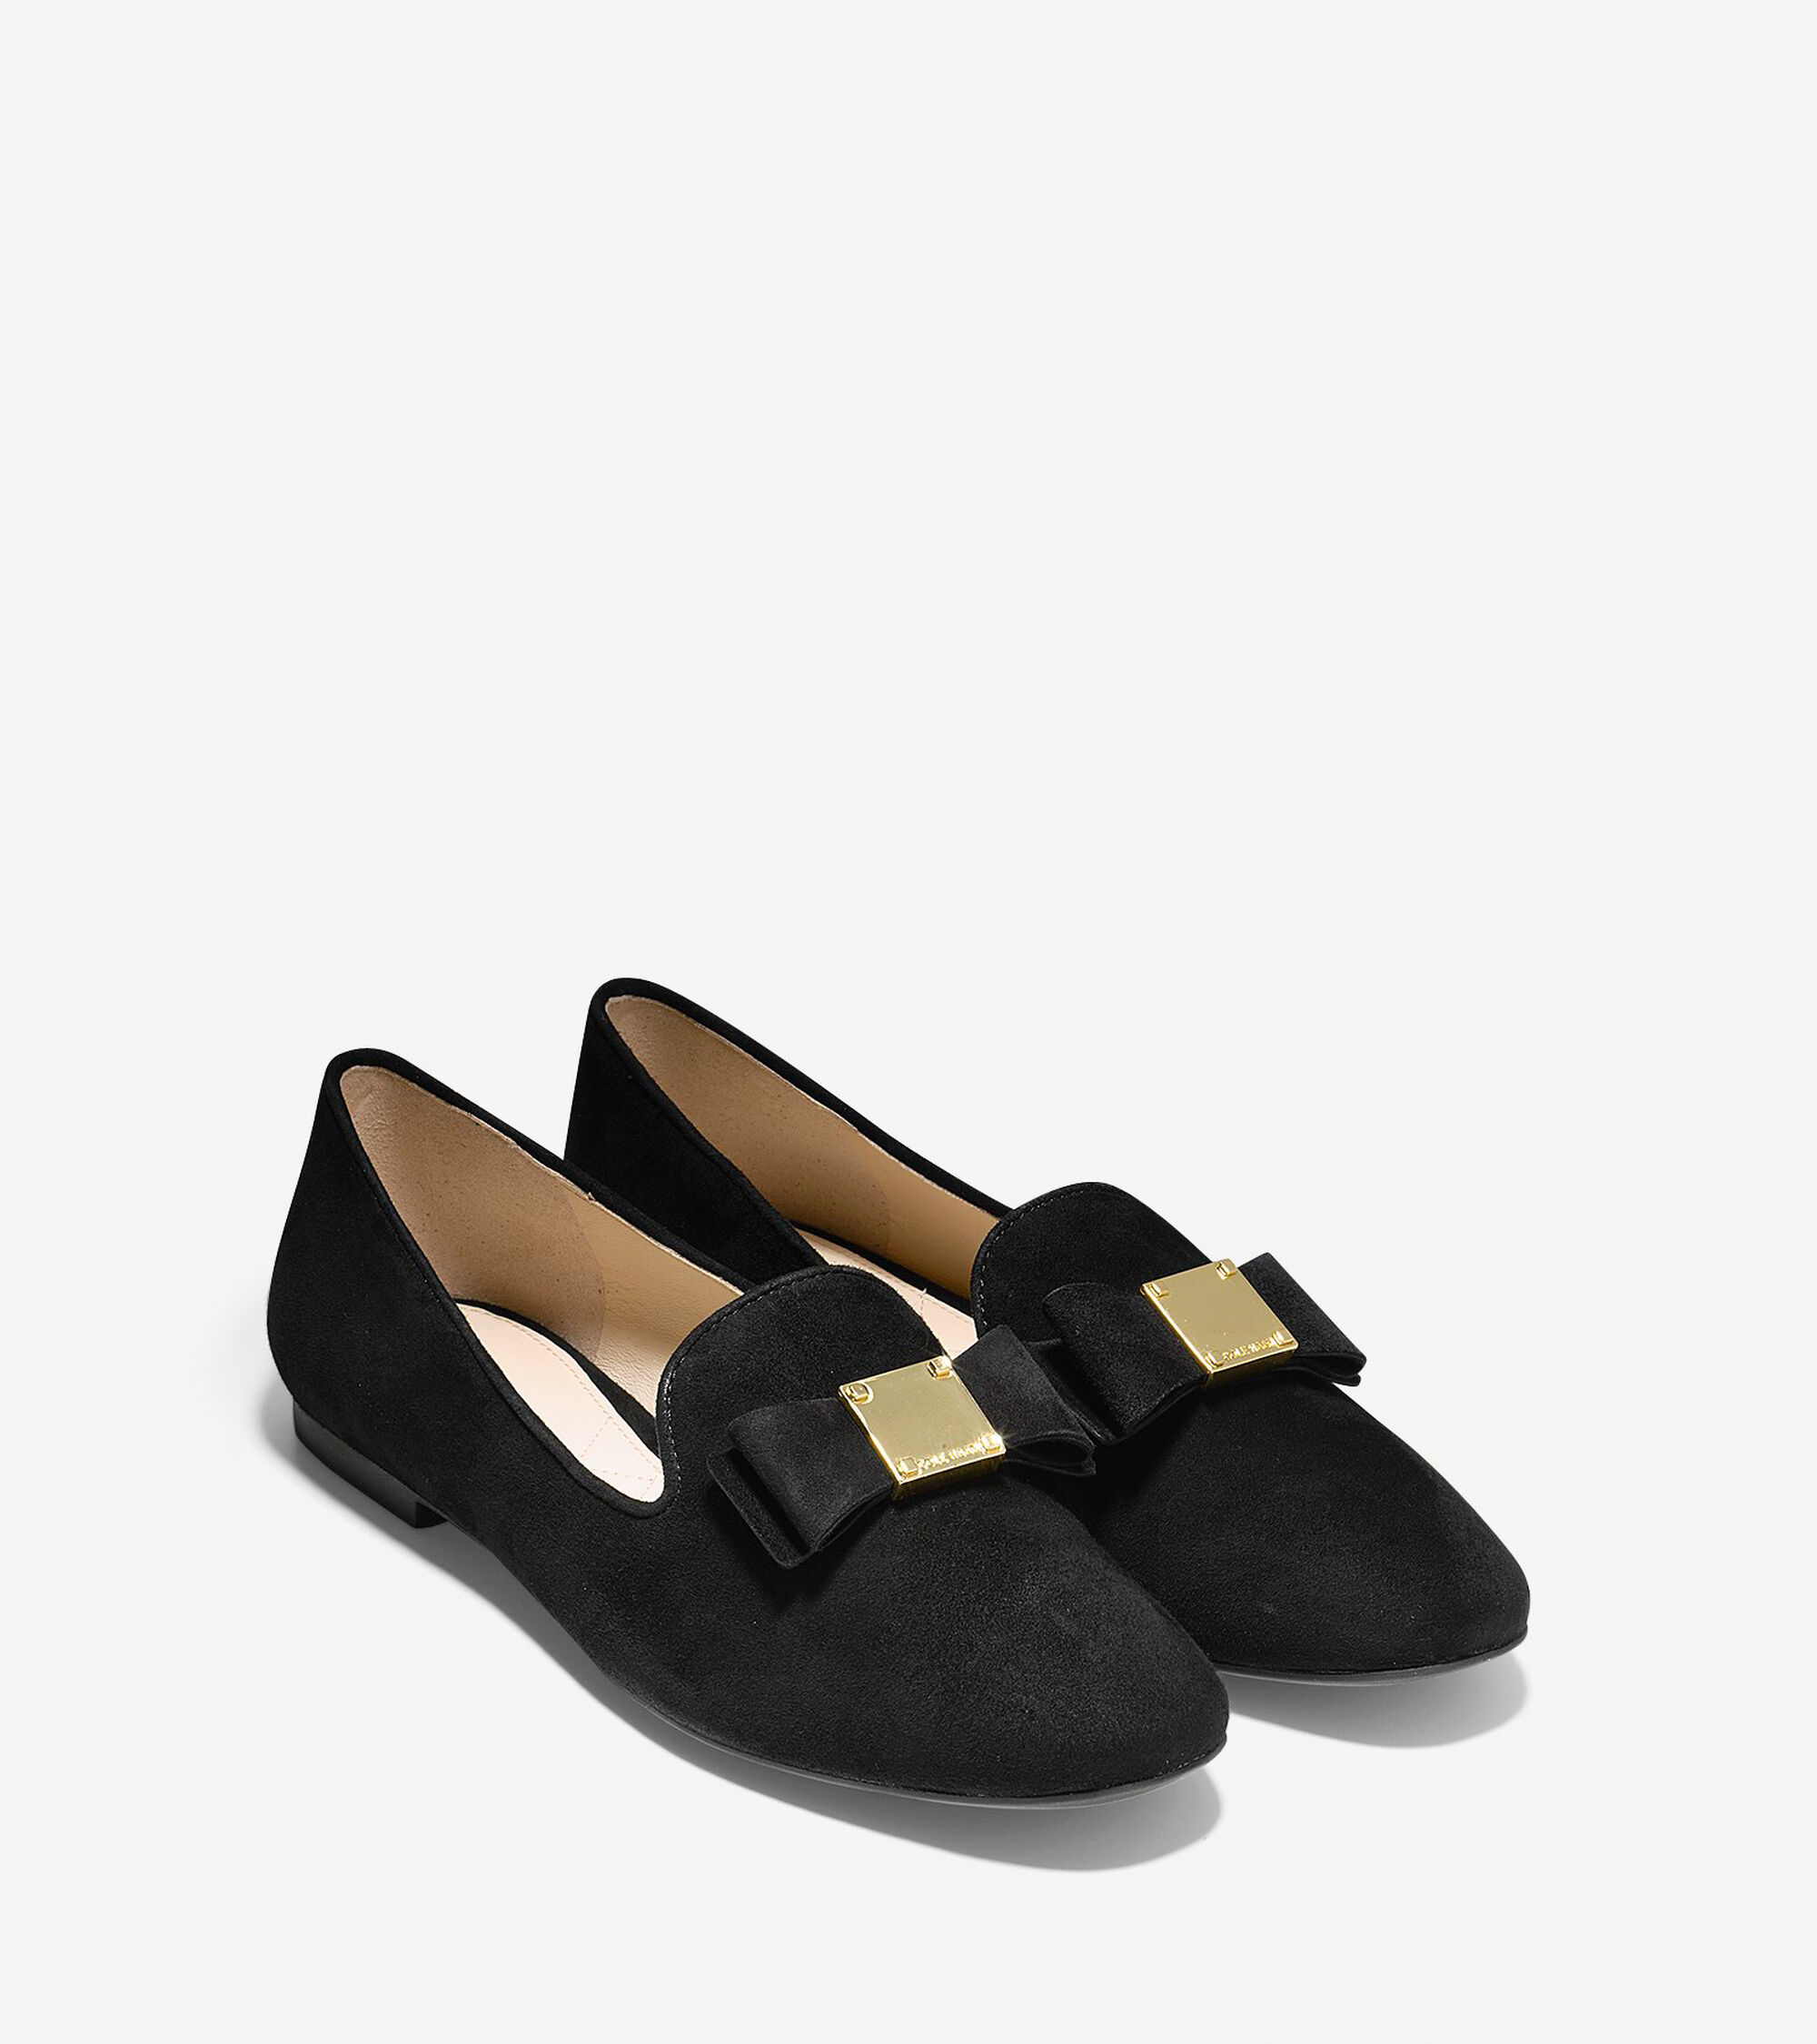 a4c27d43935 ... Tali Bow Loafer  Tali Bow Loafer.  COLEHAAN